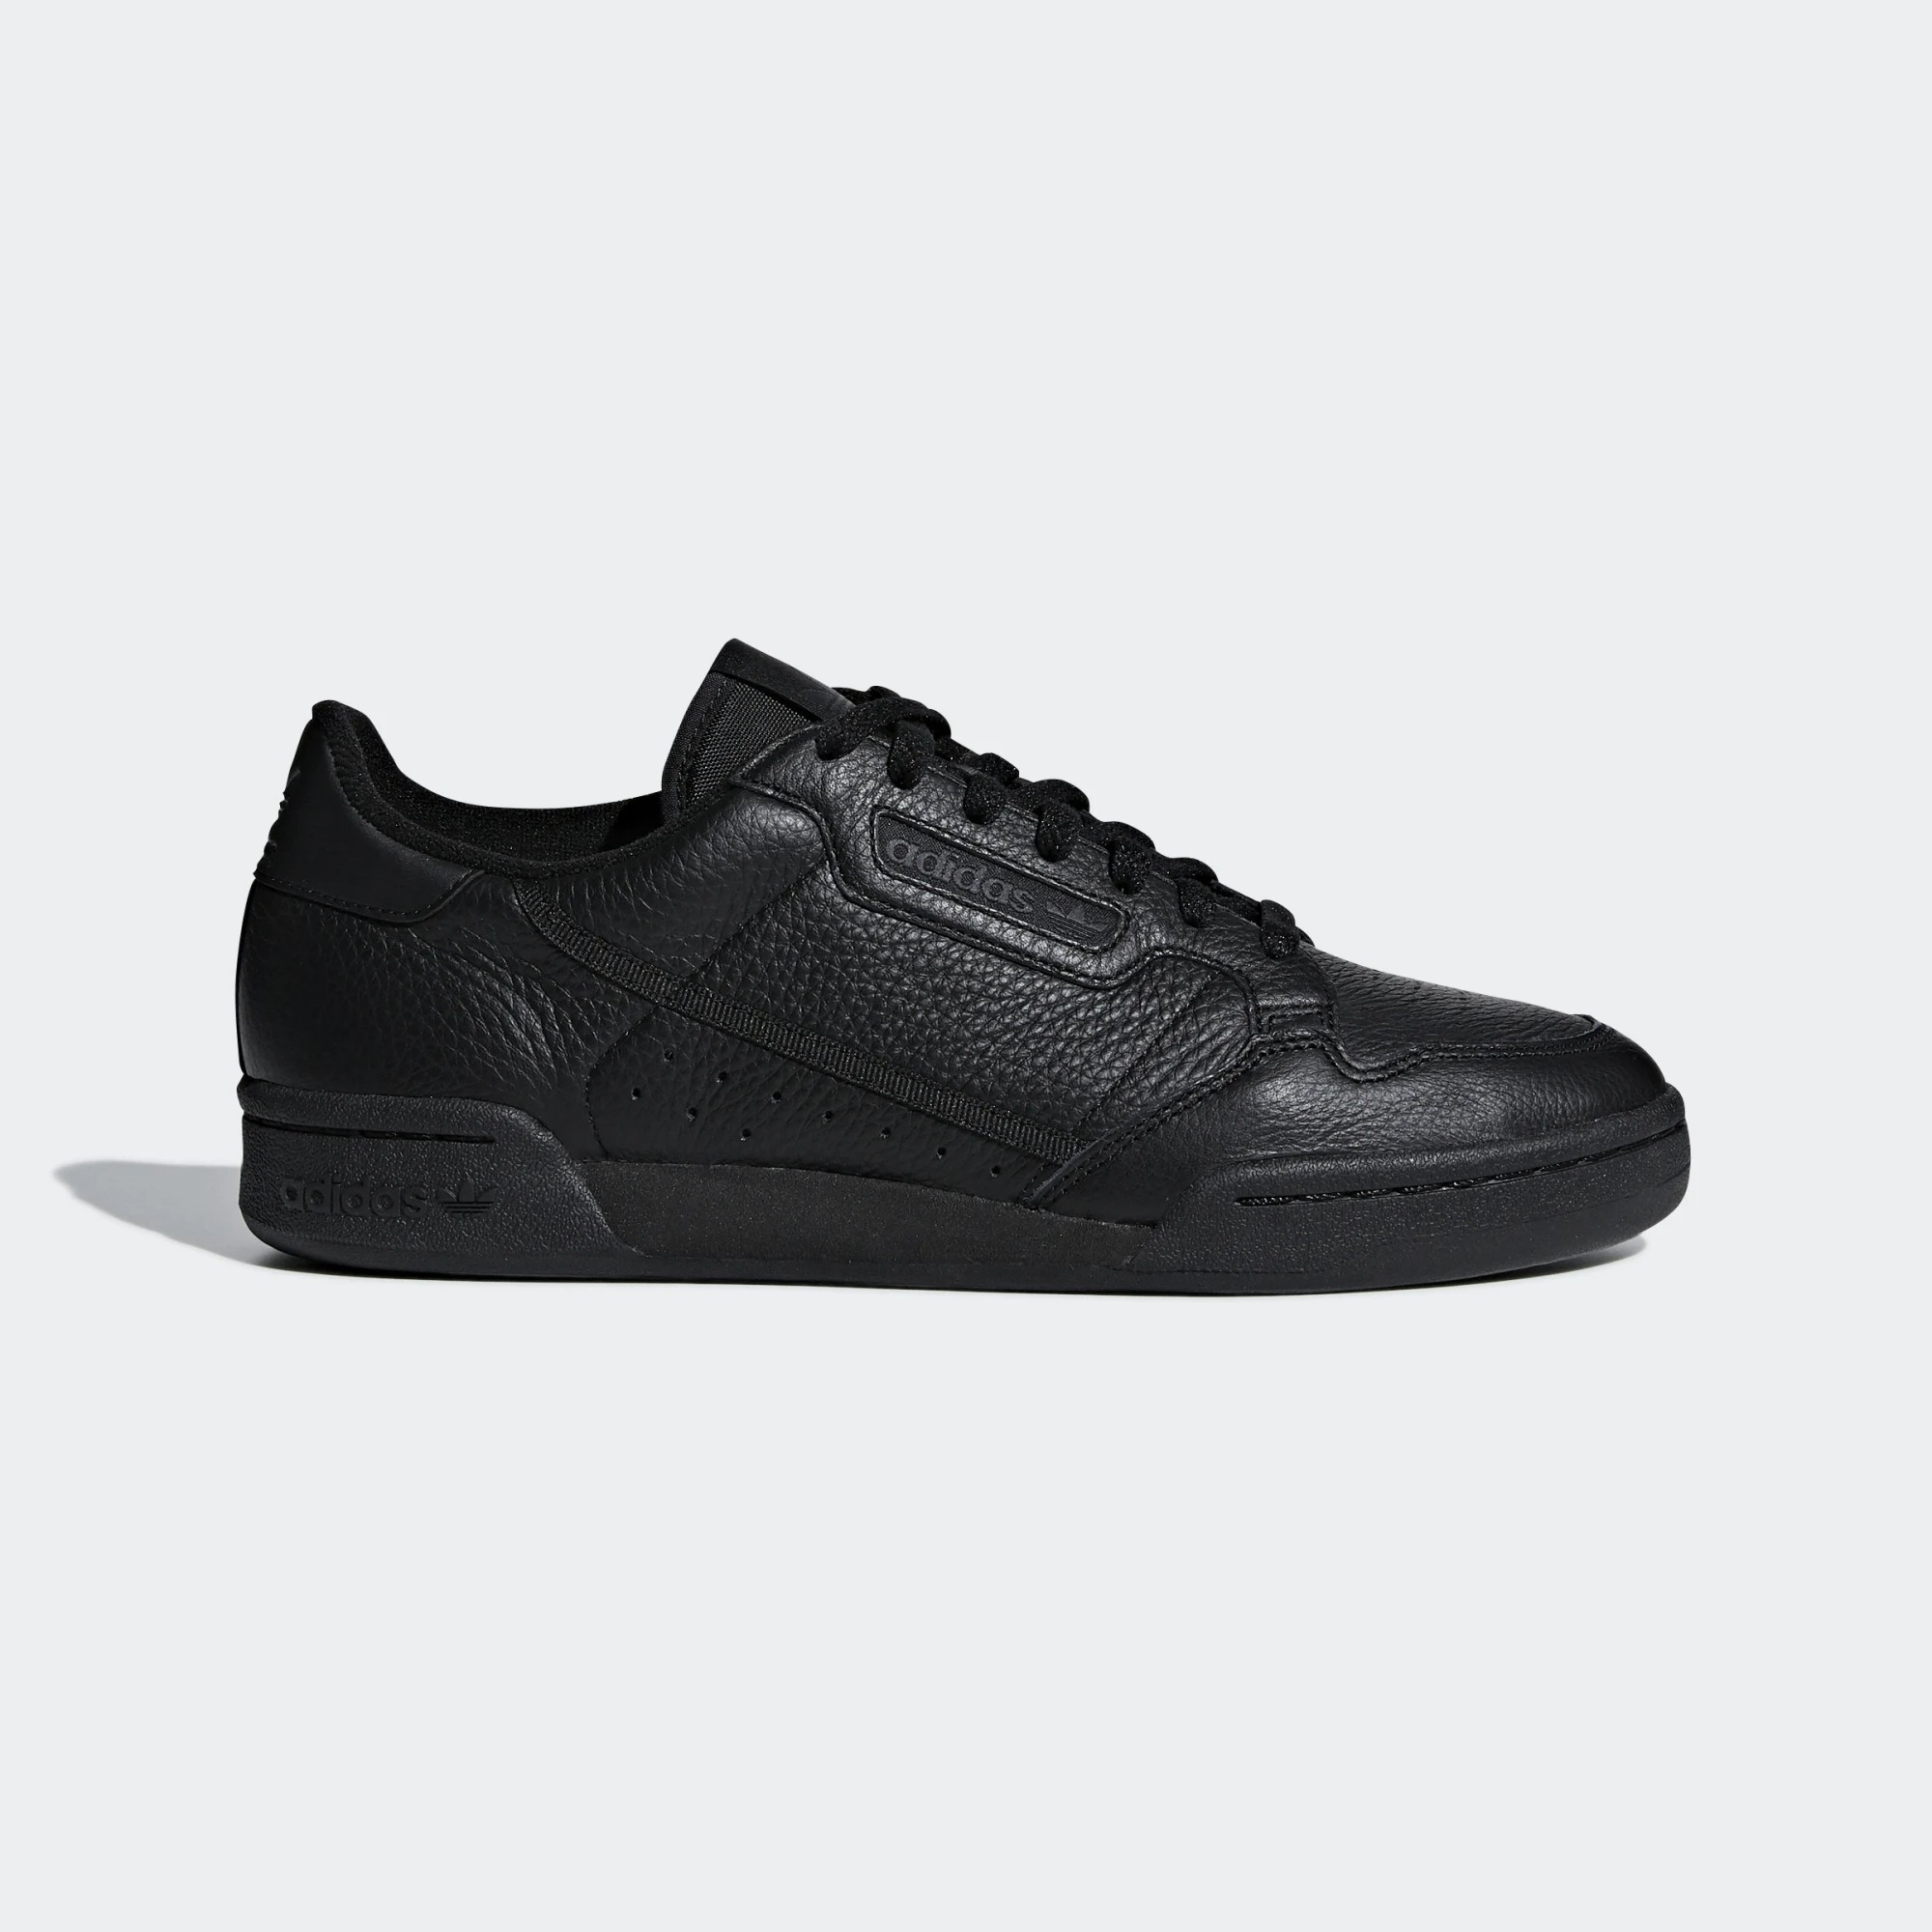 Adidas Originals Continental 80 Shoes Black BD7657